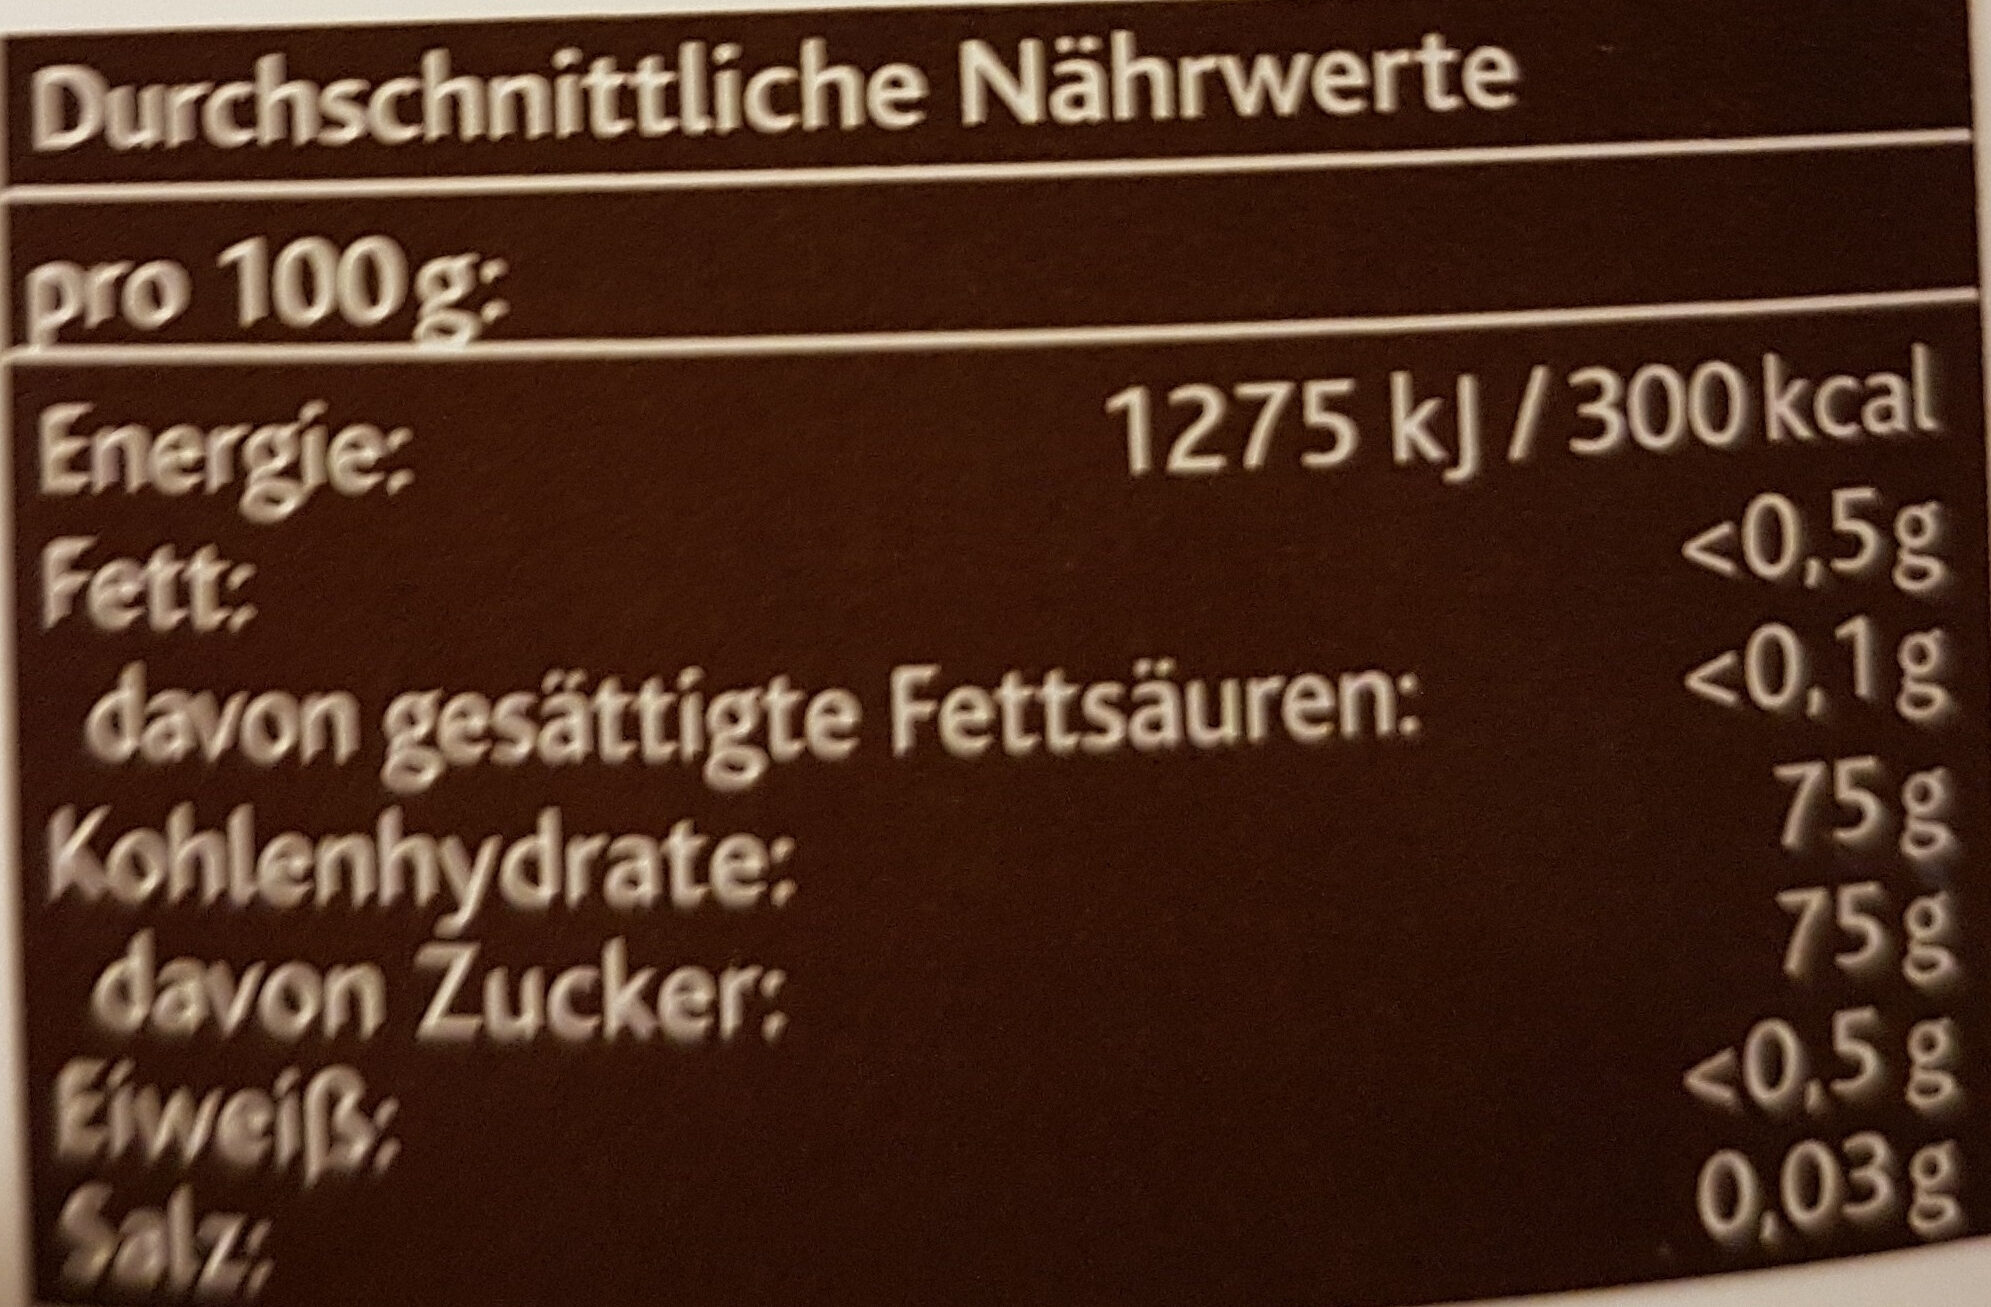 Agavendicksaft - Nutrition facts - de